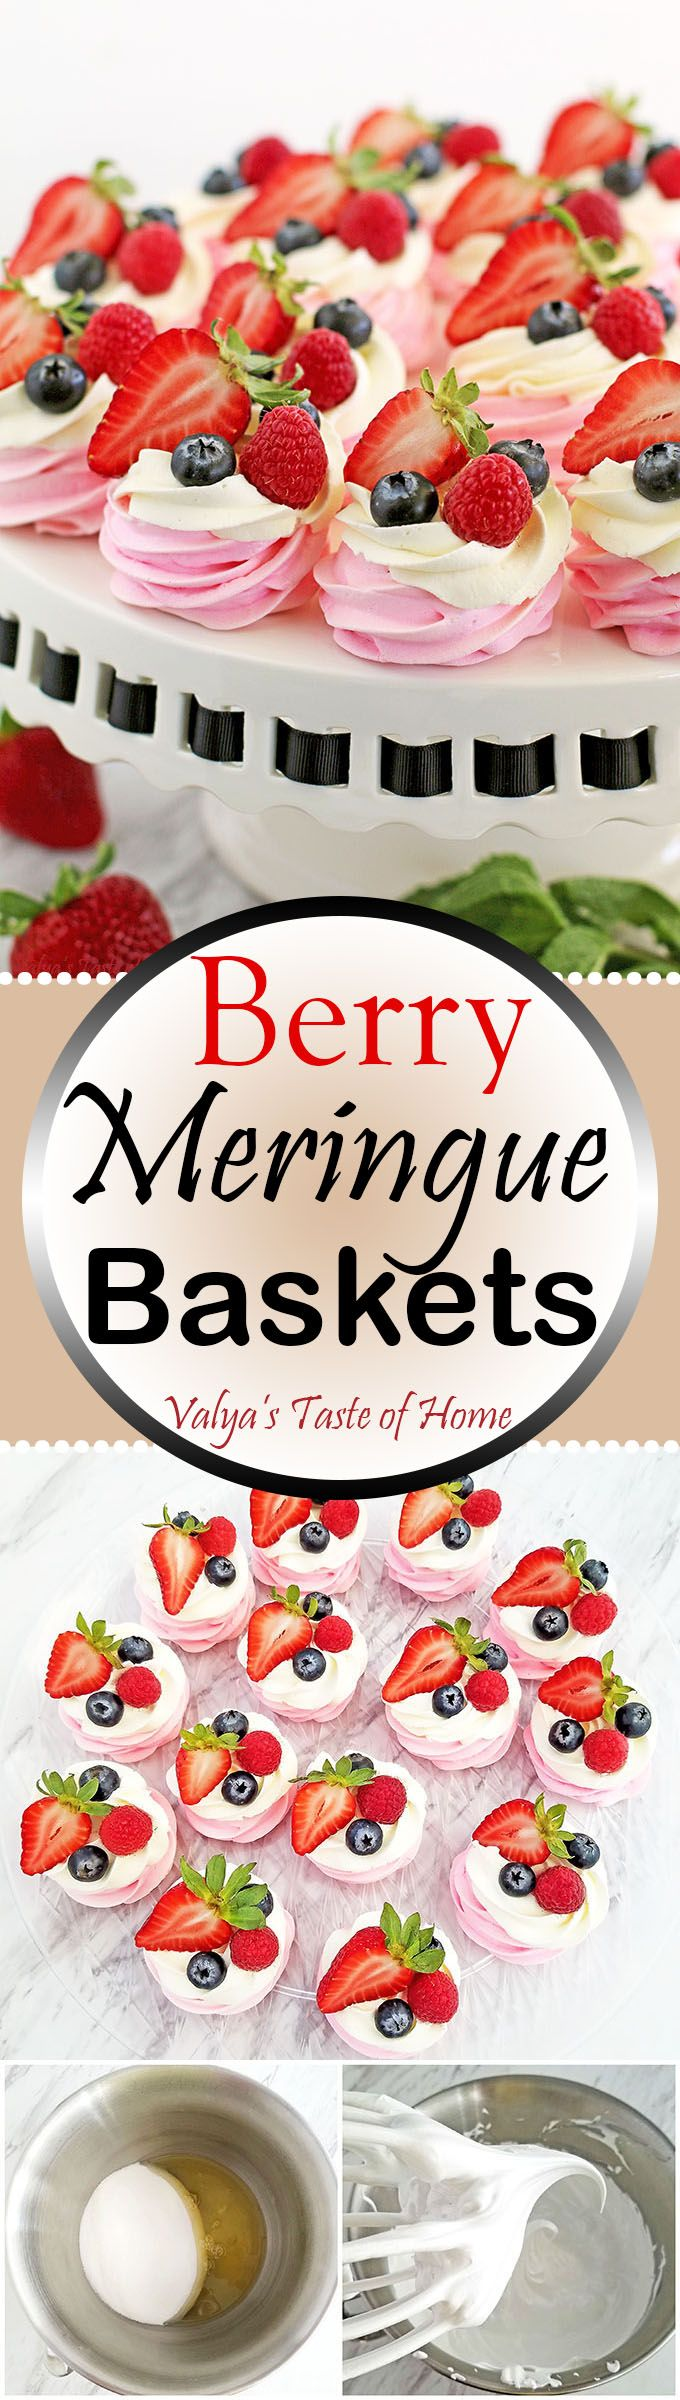 These Berry Meringue Baskets Recipe look beautiful on the dessert table and are a huge hit. EVERY TIME. So, make your mom smile this coming up Mother's Day. Berries go hand in hand with the smooth cream, and the delightful crunch of the sweet meringue that just melts in your mouth.